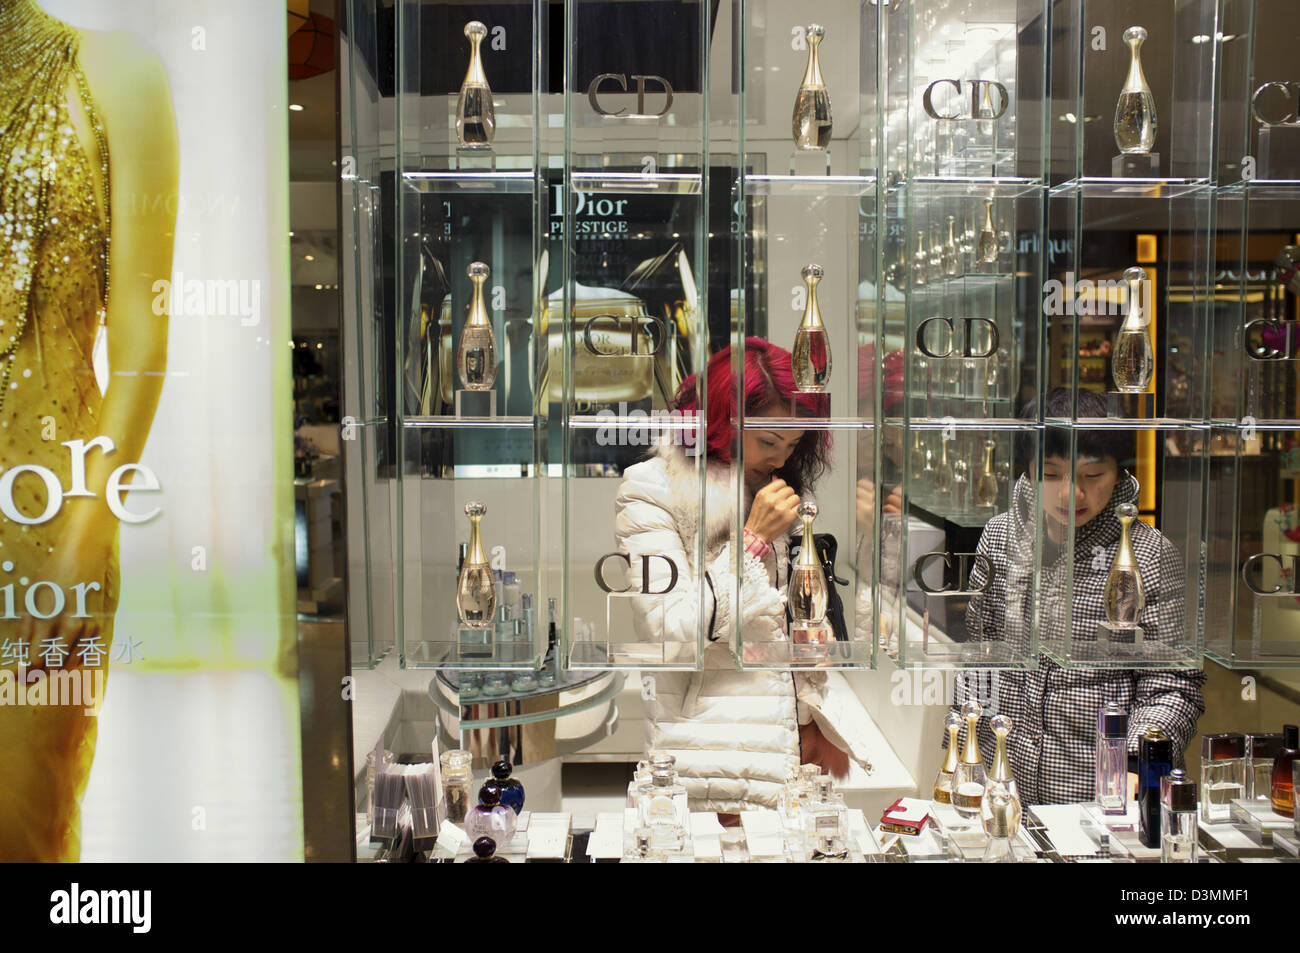 Chinese women buy CD perfume at the cosmetics section in a shopping mall in Nanchang, Jiangxi province, China. 14 - Stock Image